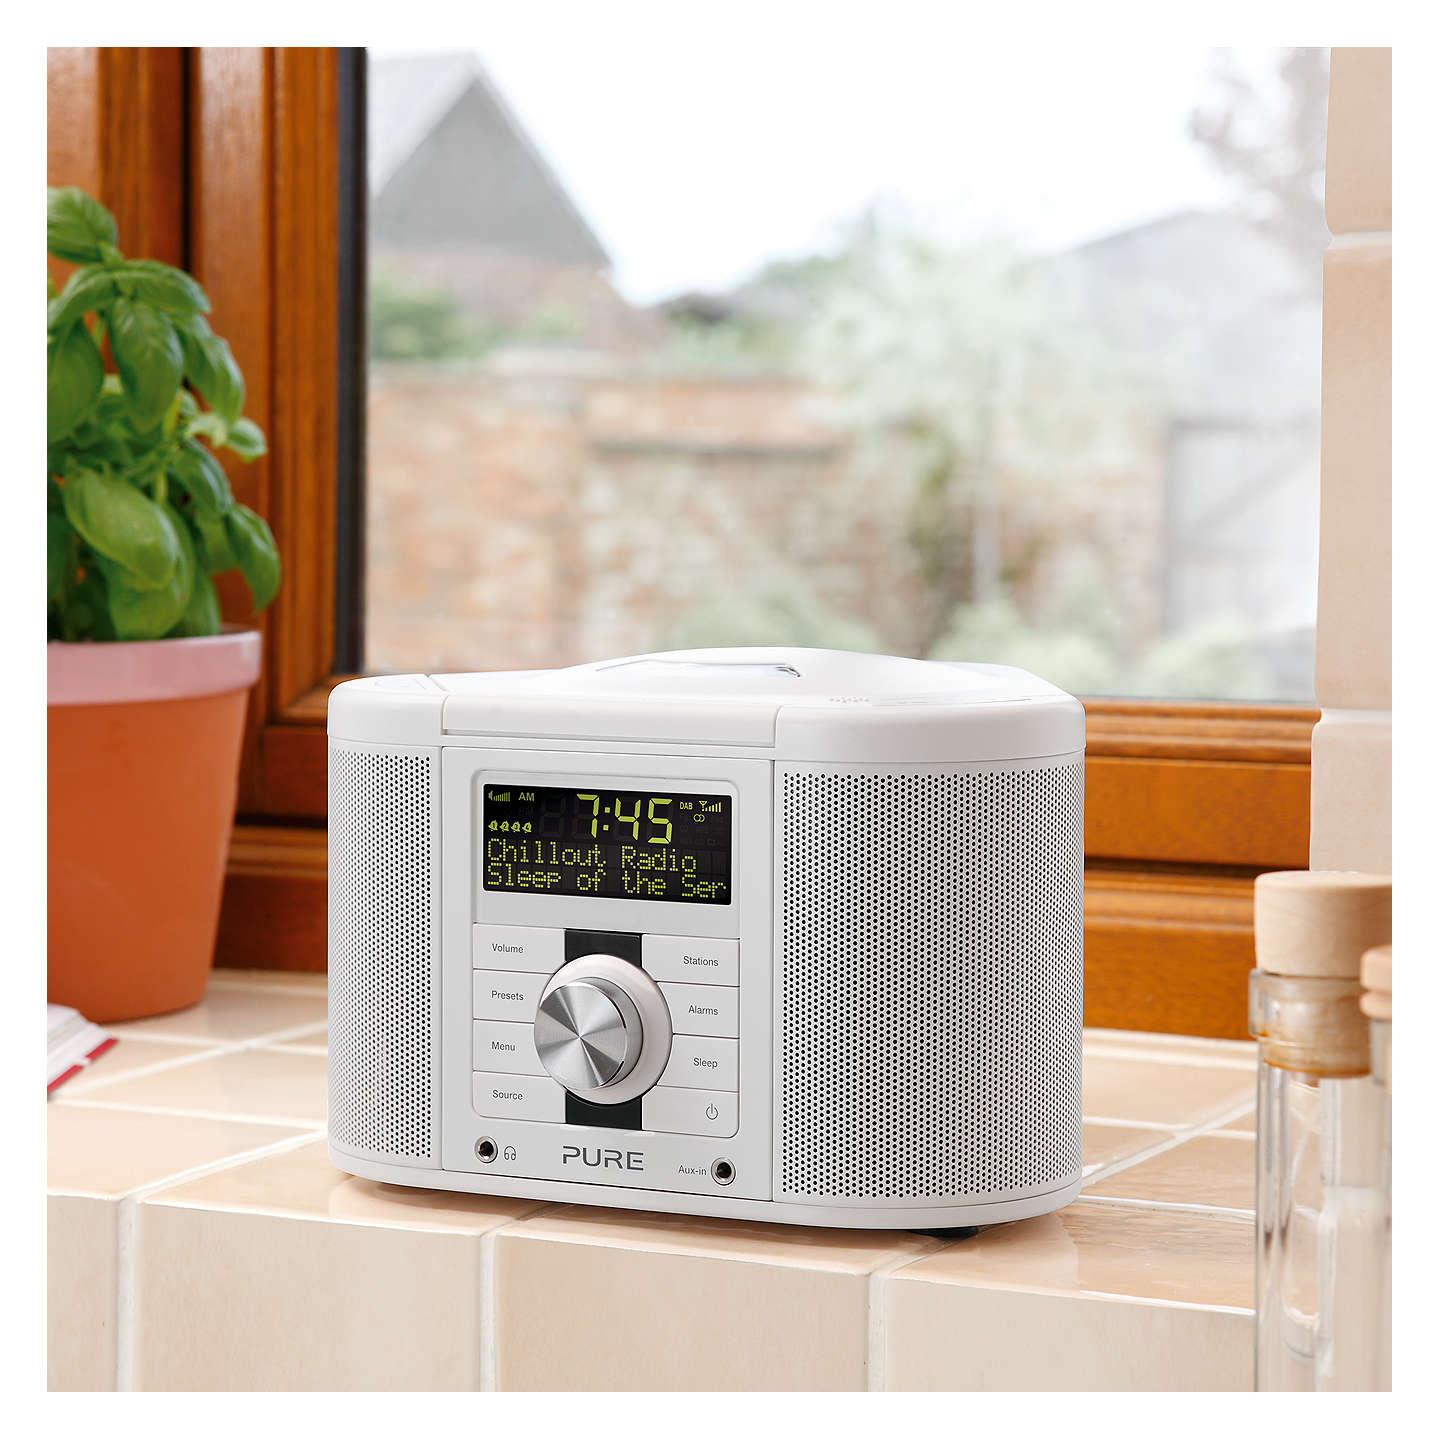 BuyPure Chronos CD Series II DAB/FM/CD Clock Radio, White Online at johnlewis.com